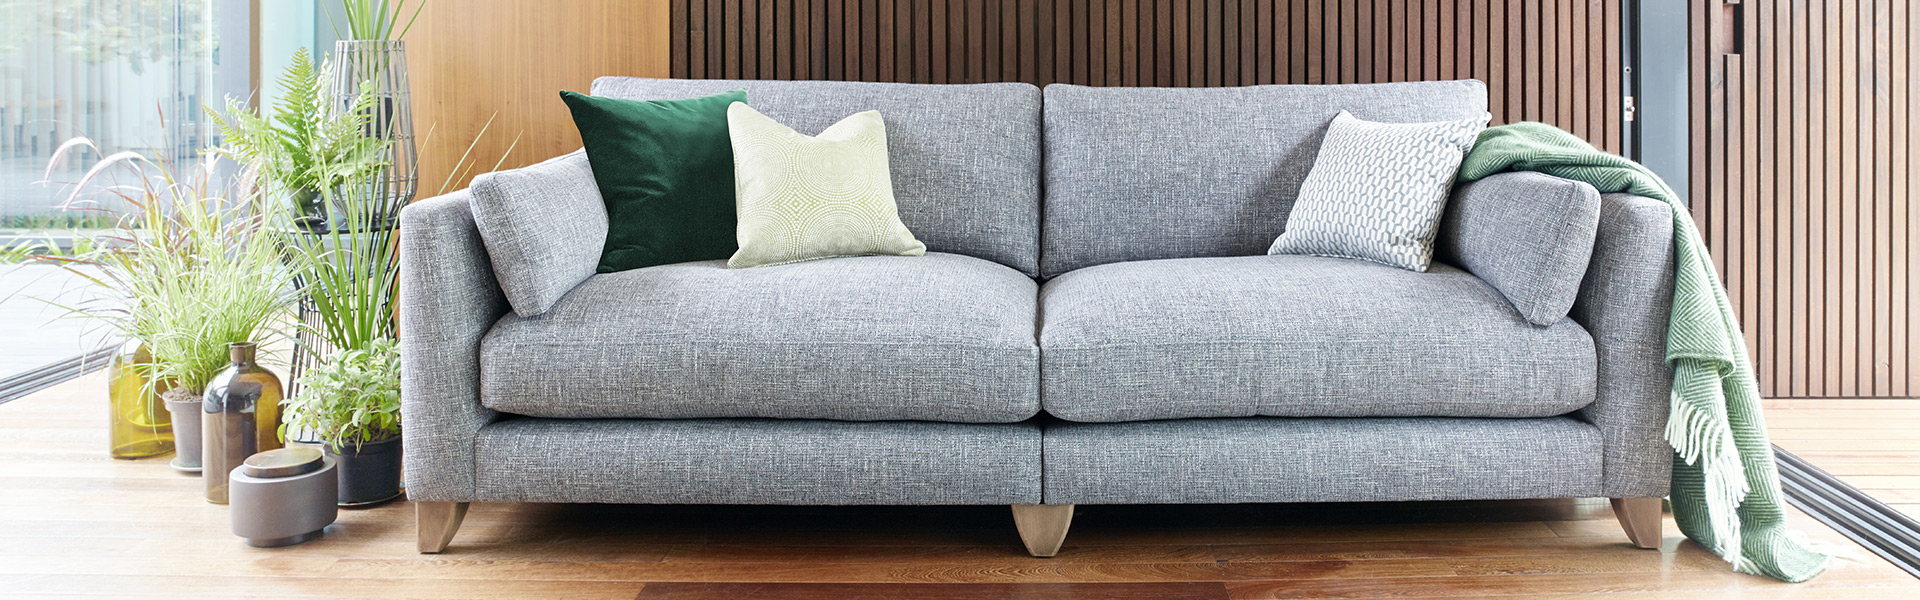 Most Recently Released Paloma Sofas With Cushions Pertaining To Meet Paloma (View 3 of 25)